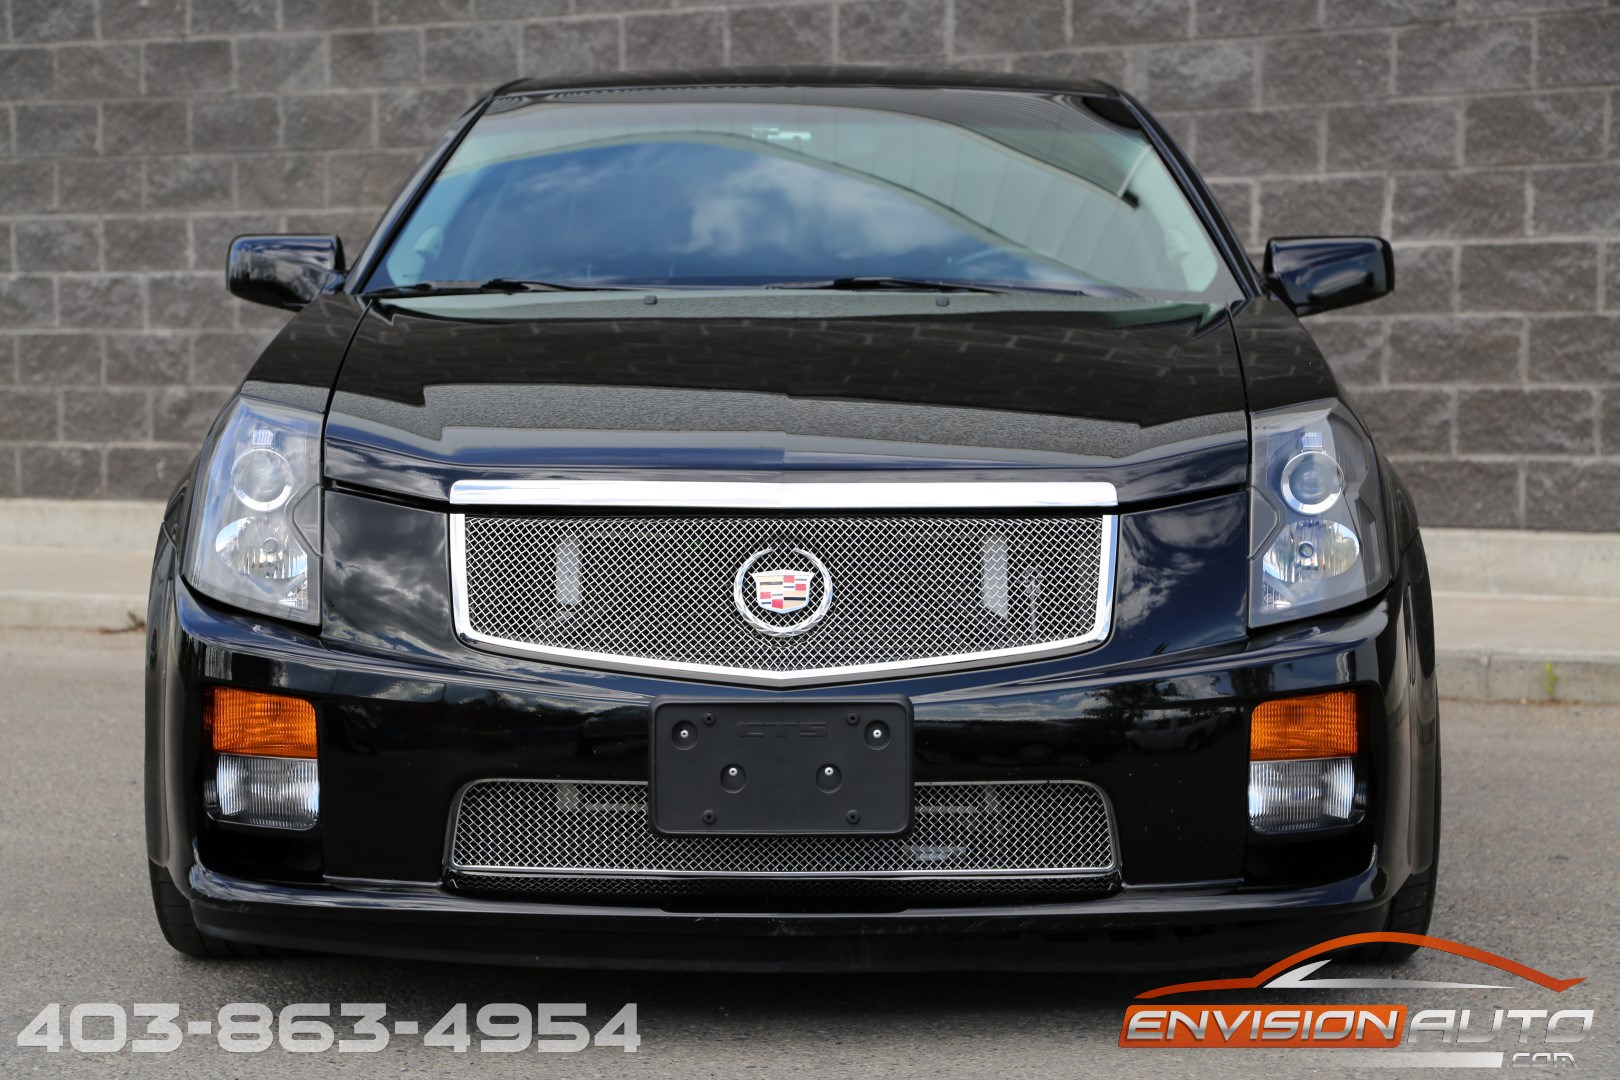 2005 cadillac cts v sedan 6 speed manual 470 rwhp. Black Bedroom Furniture Sets. Home Design Ideas